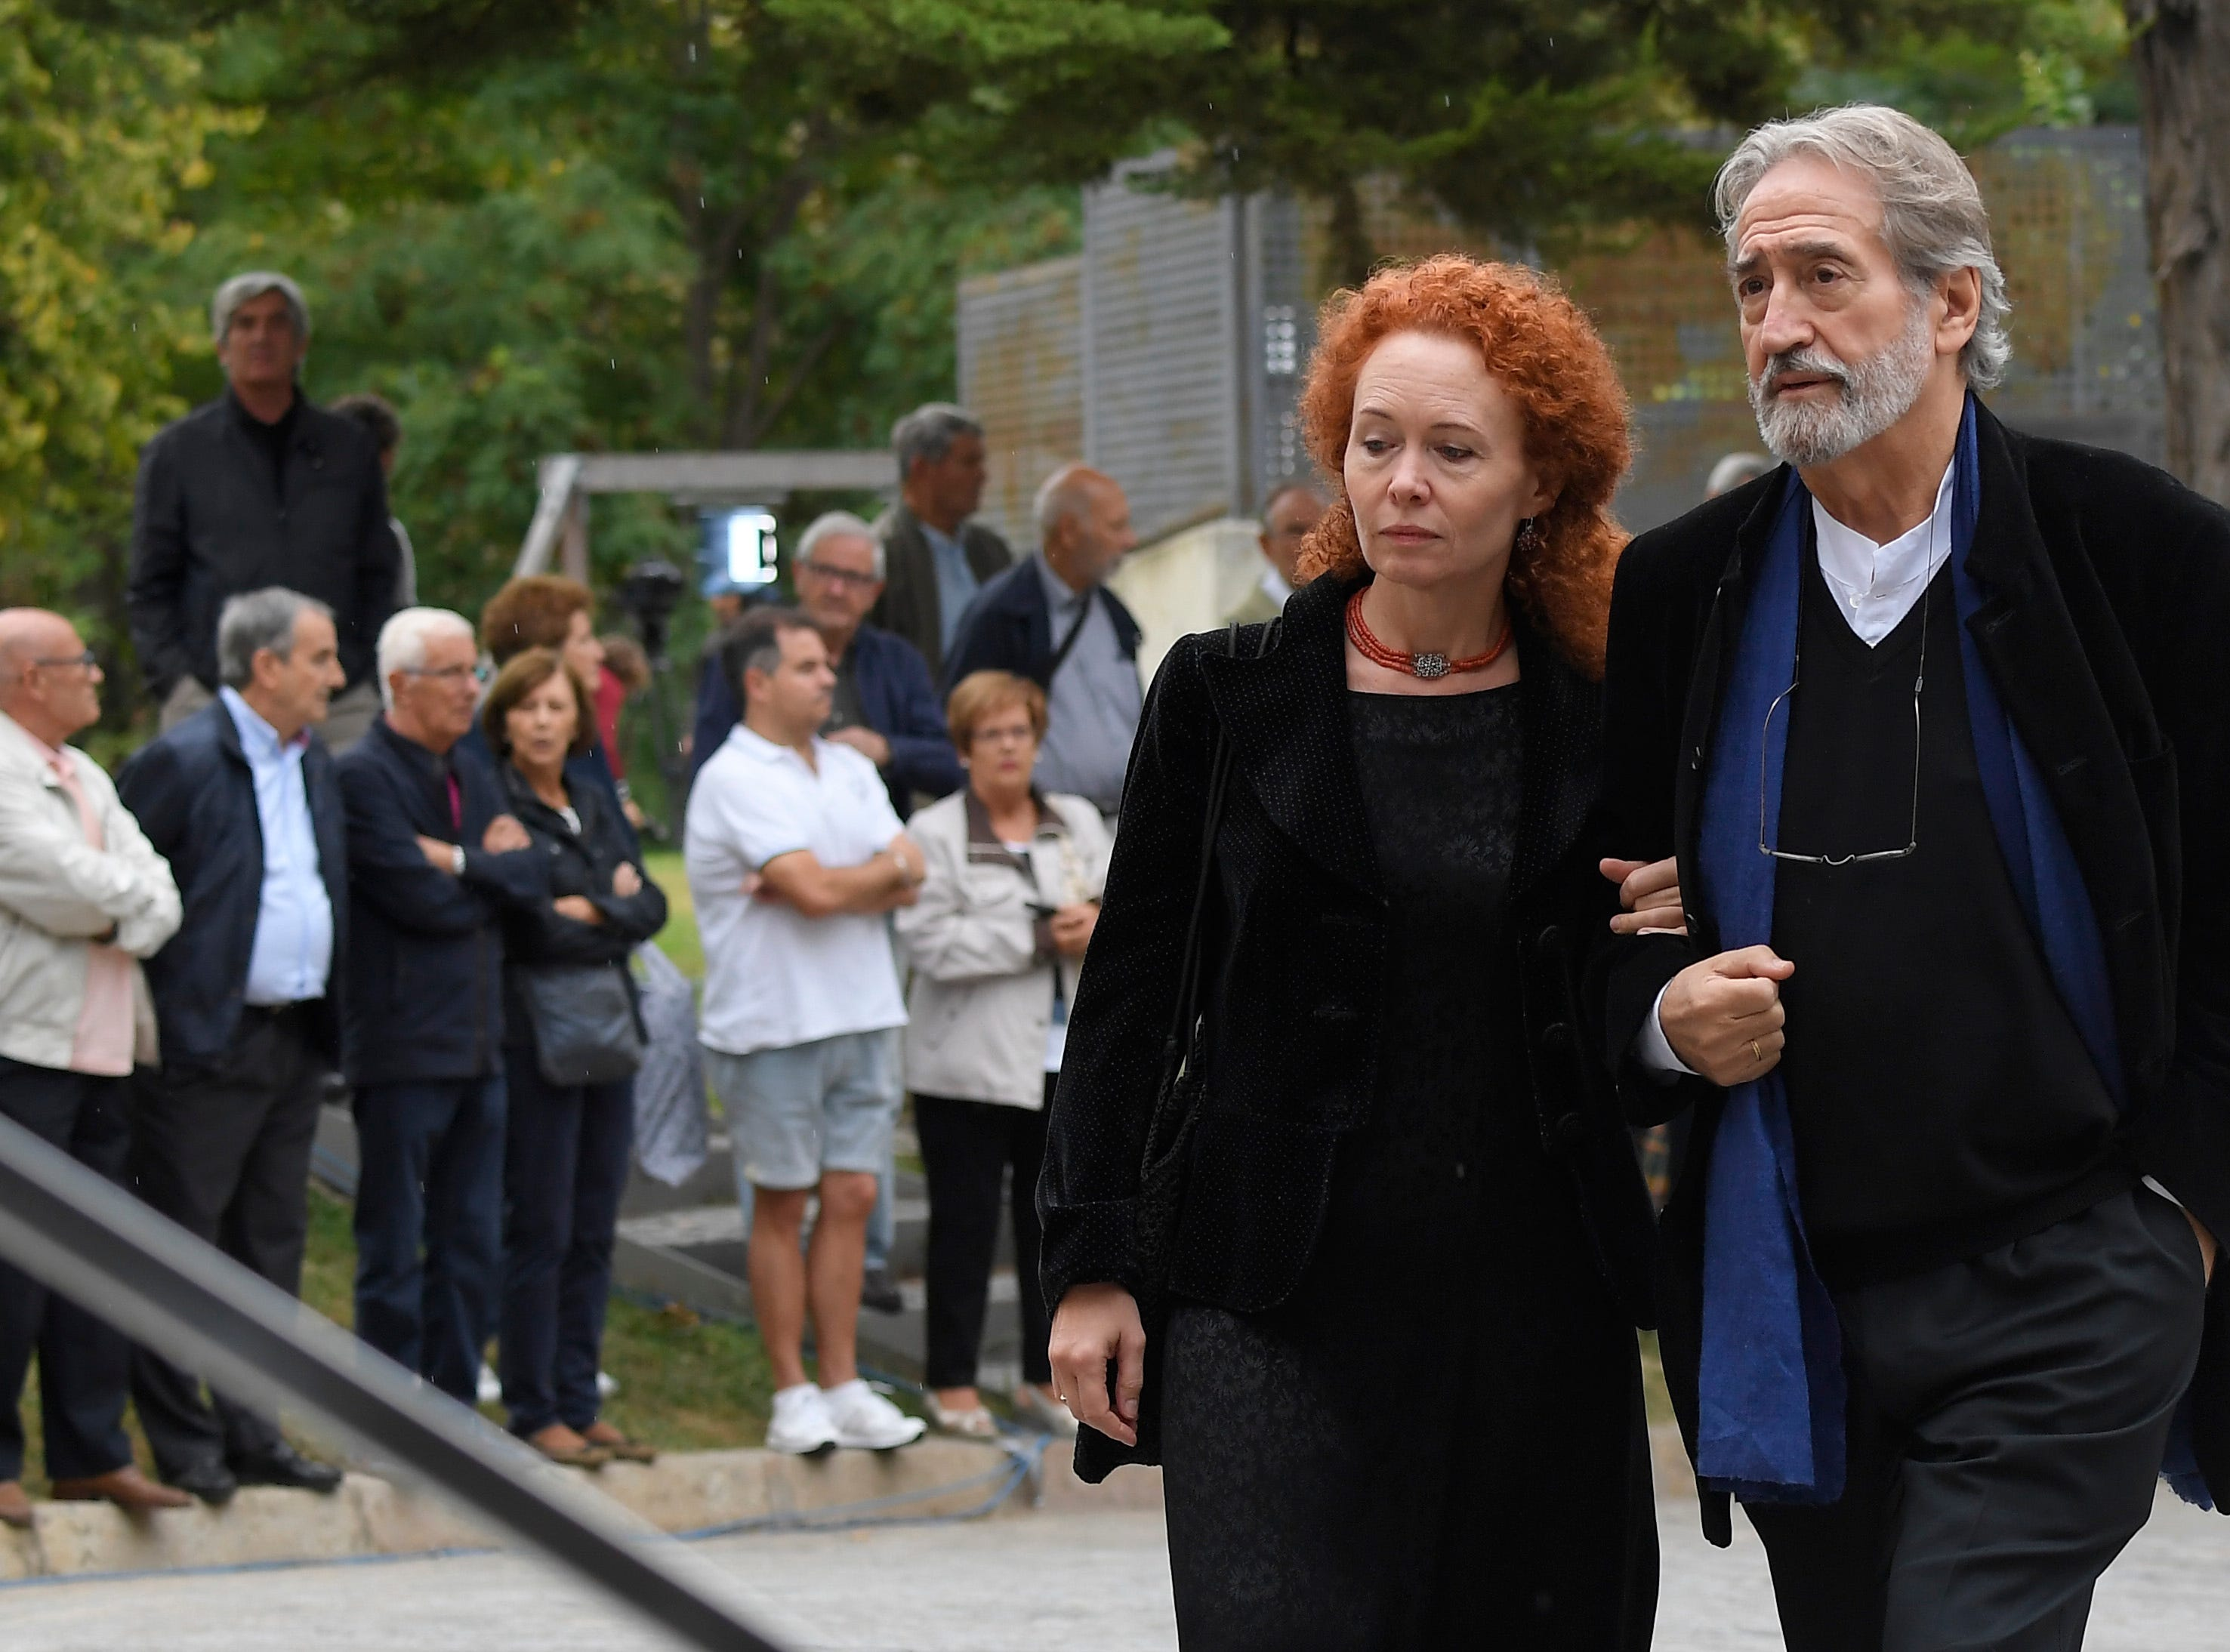 Conductor and viol player, Jordi Savall  and his wife, philosopher Maria Bartels, arrive to attend the funeral for Spanish opera singer Montserrat Caballe in Barcelona on Oct. 8, 2018.